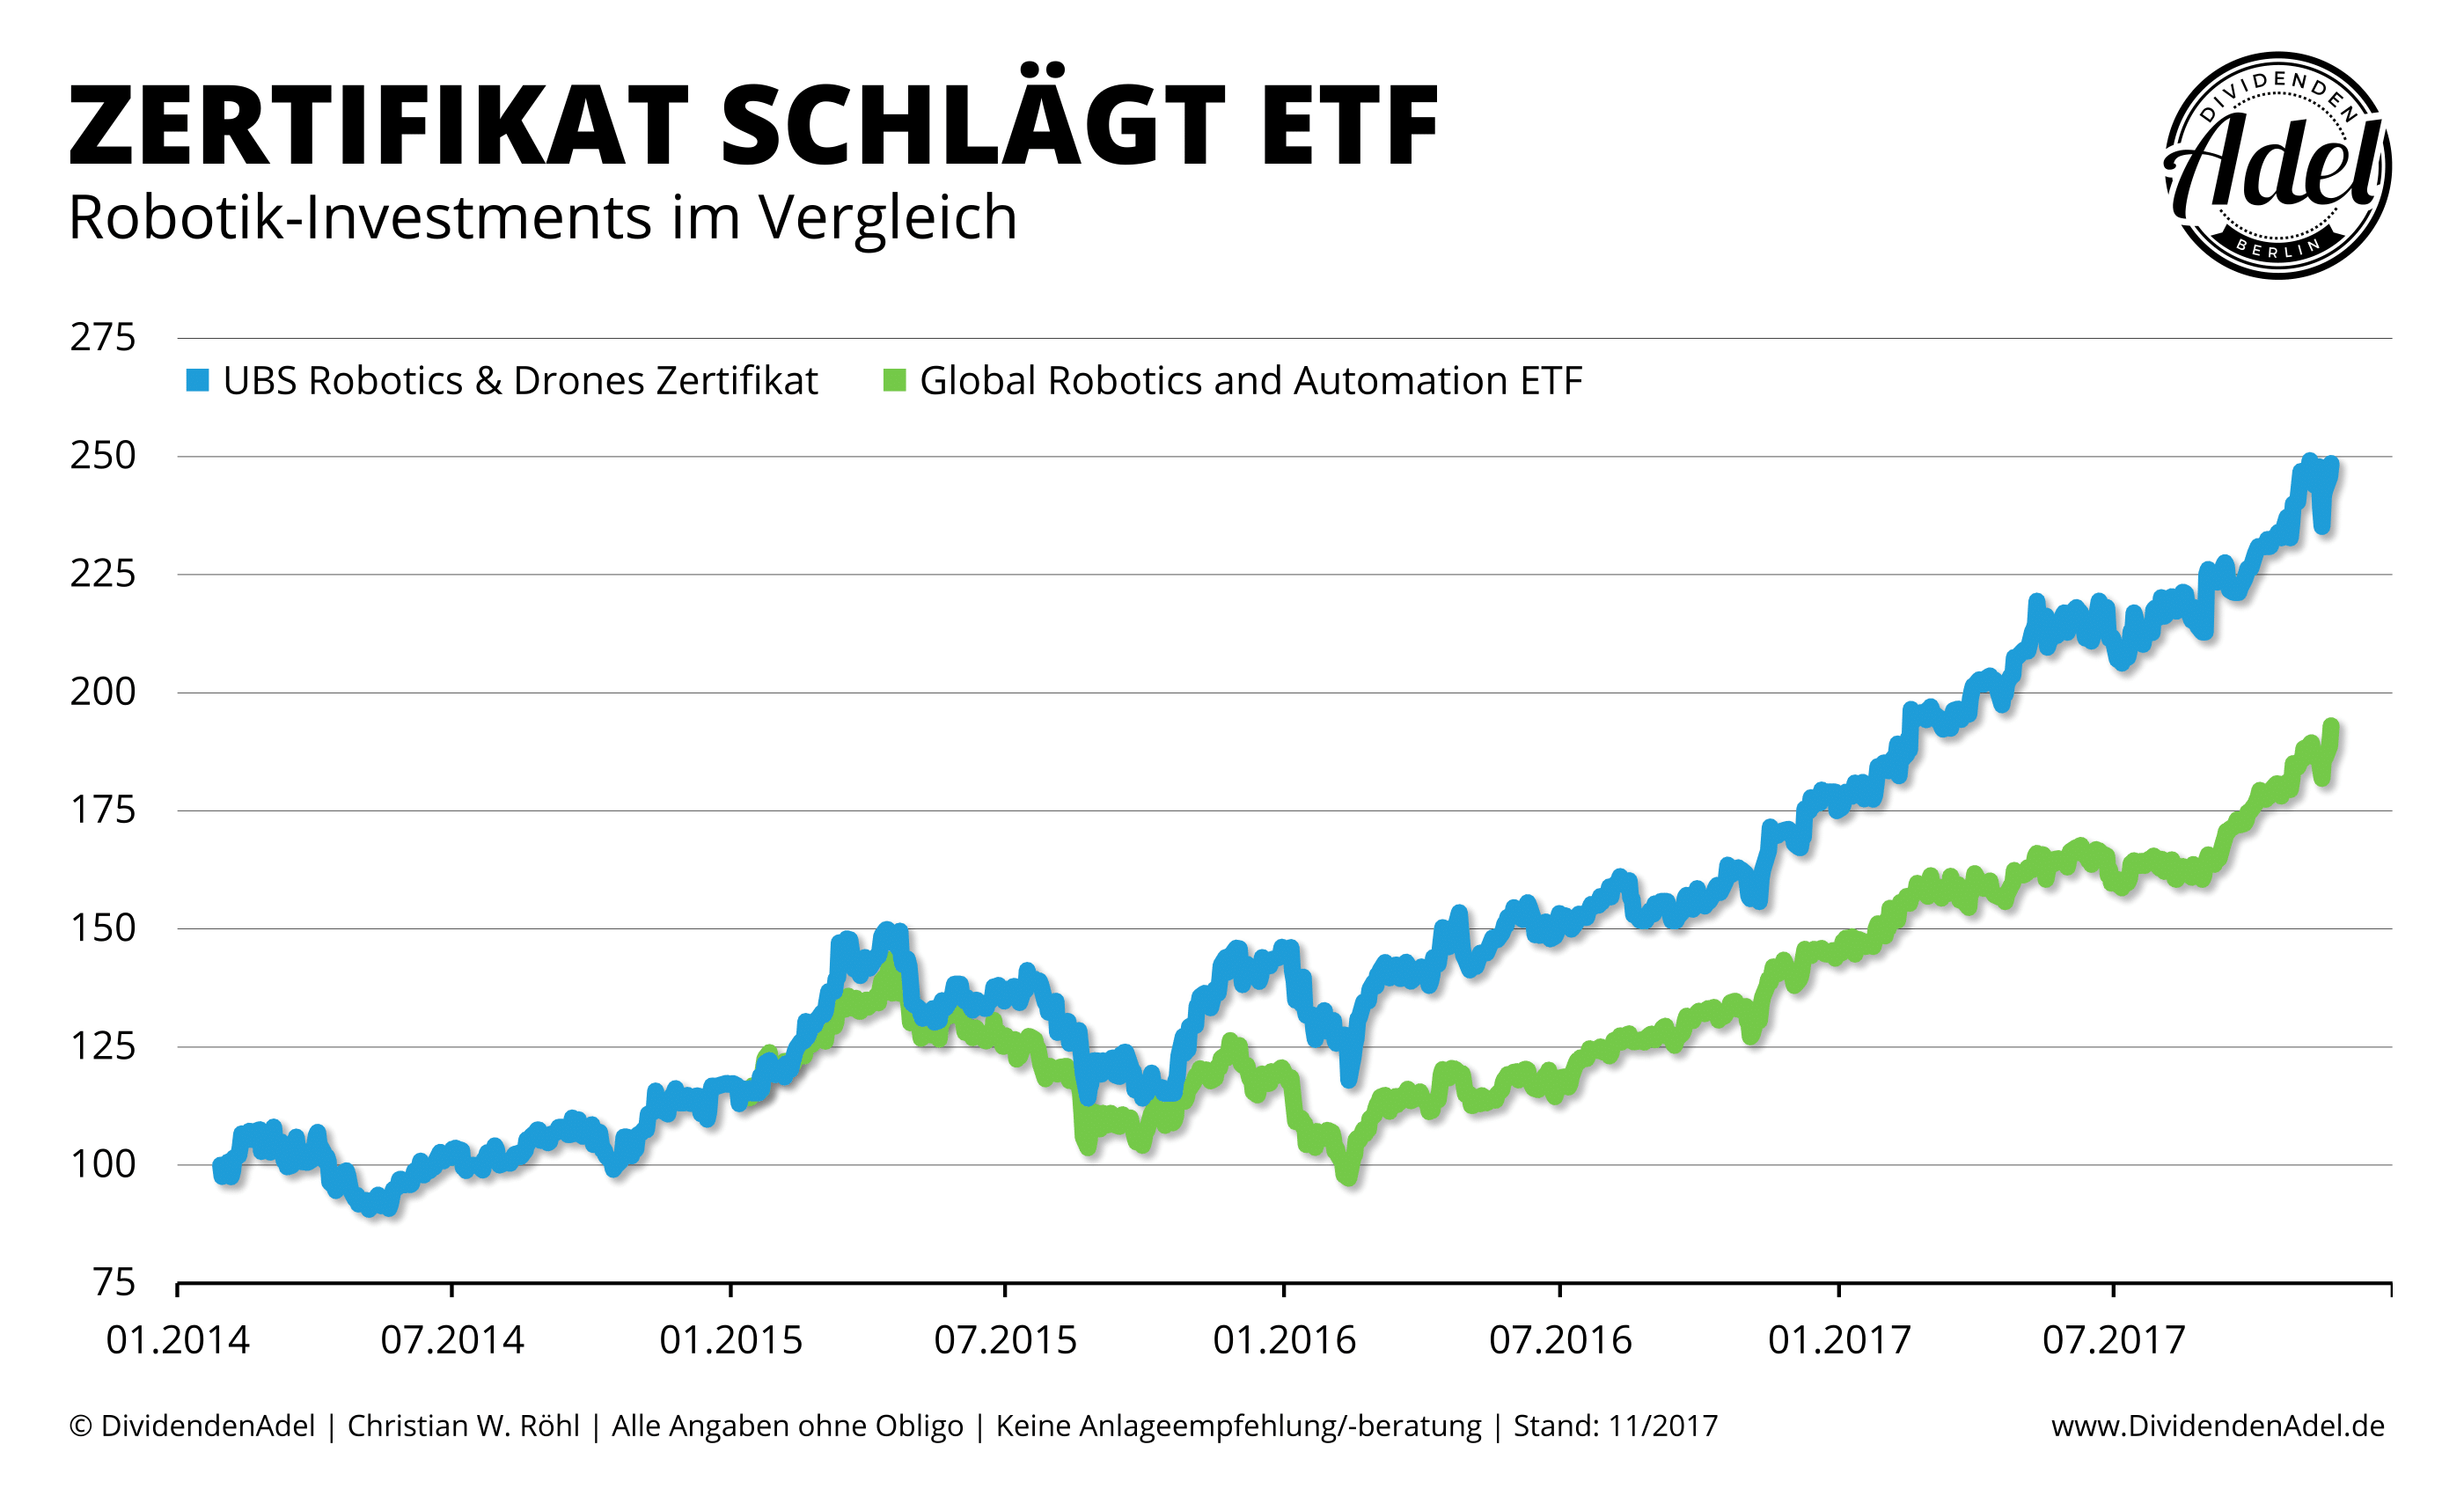 2017-11-21 UBS Robotics & Drones Zertifikat vs. Global Robotics and Automation ETF ab 01-2014-1